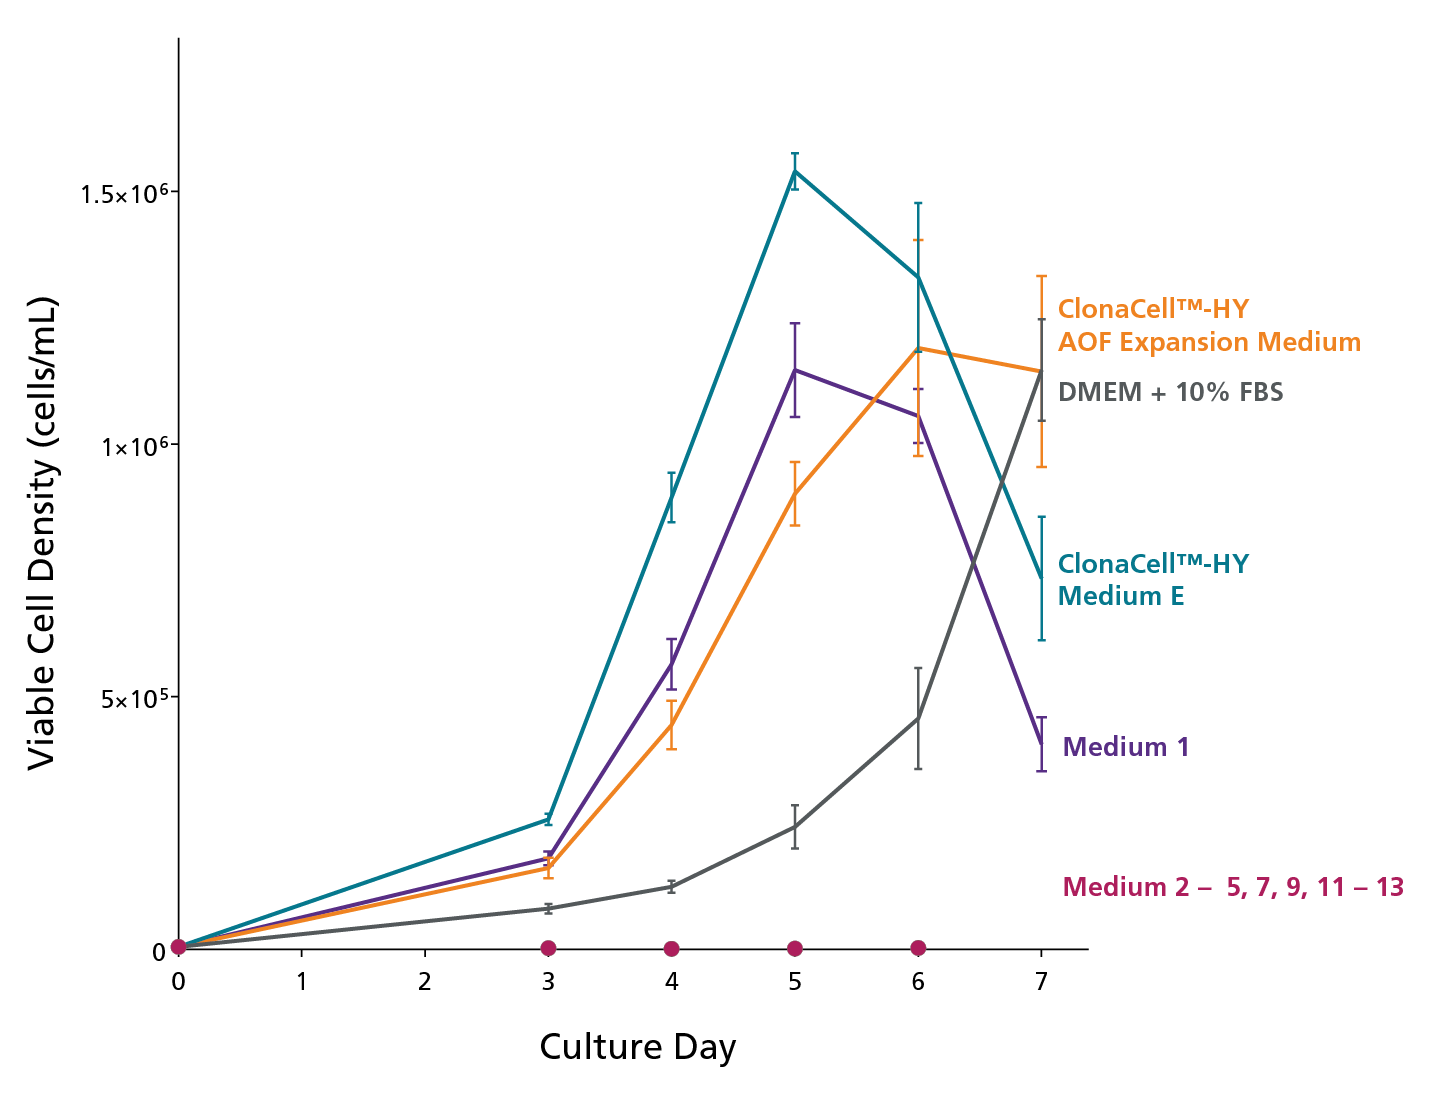 Graph comparing growth of hybridoma cell line expanded in commercially available serum-containing and serum-free hybridoma cell culture media.